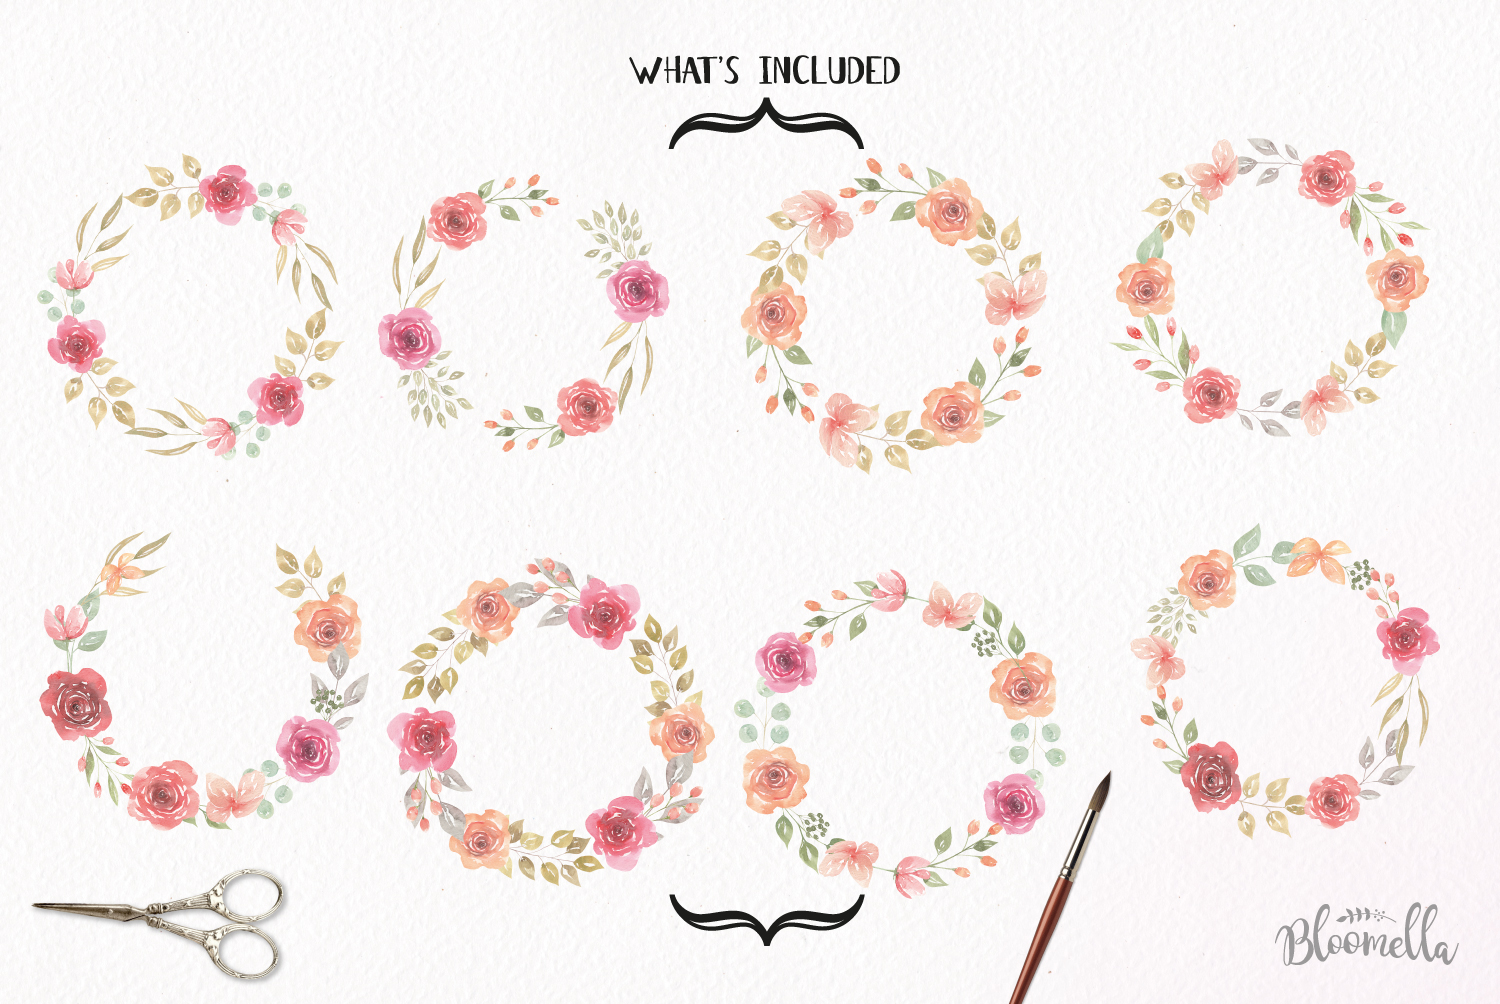 Rose Watercolor Floral Wreaths 8 Red Peach Flower Wedding example image 5